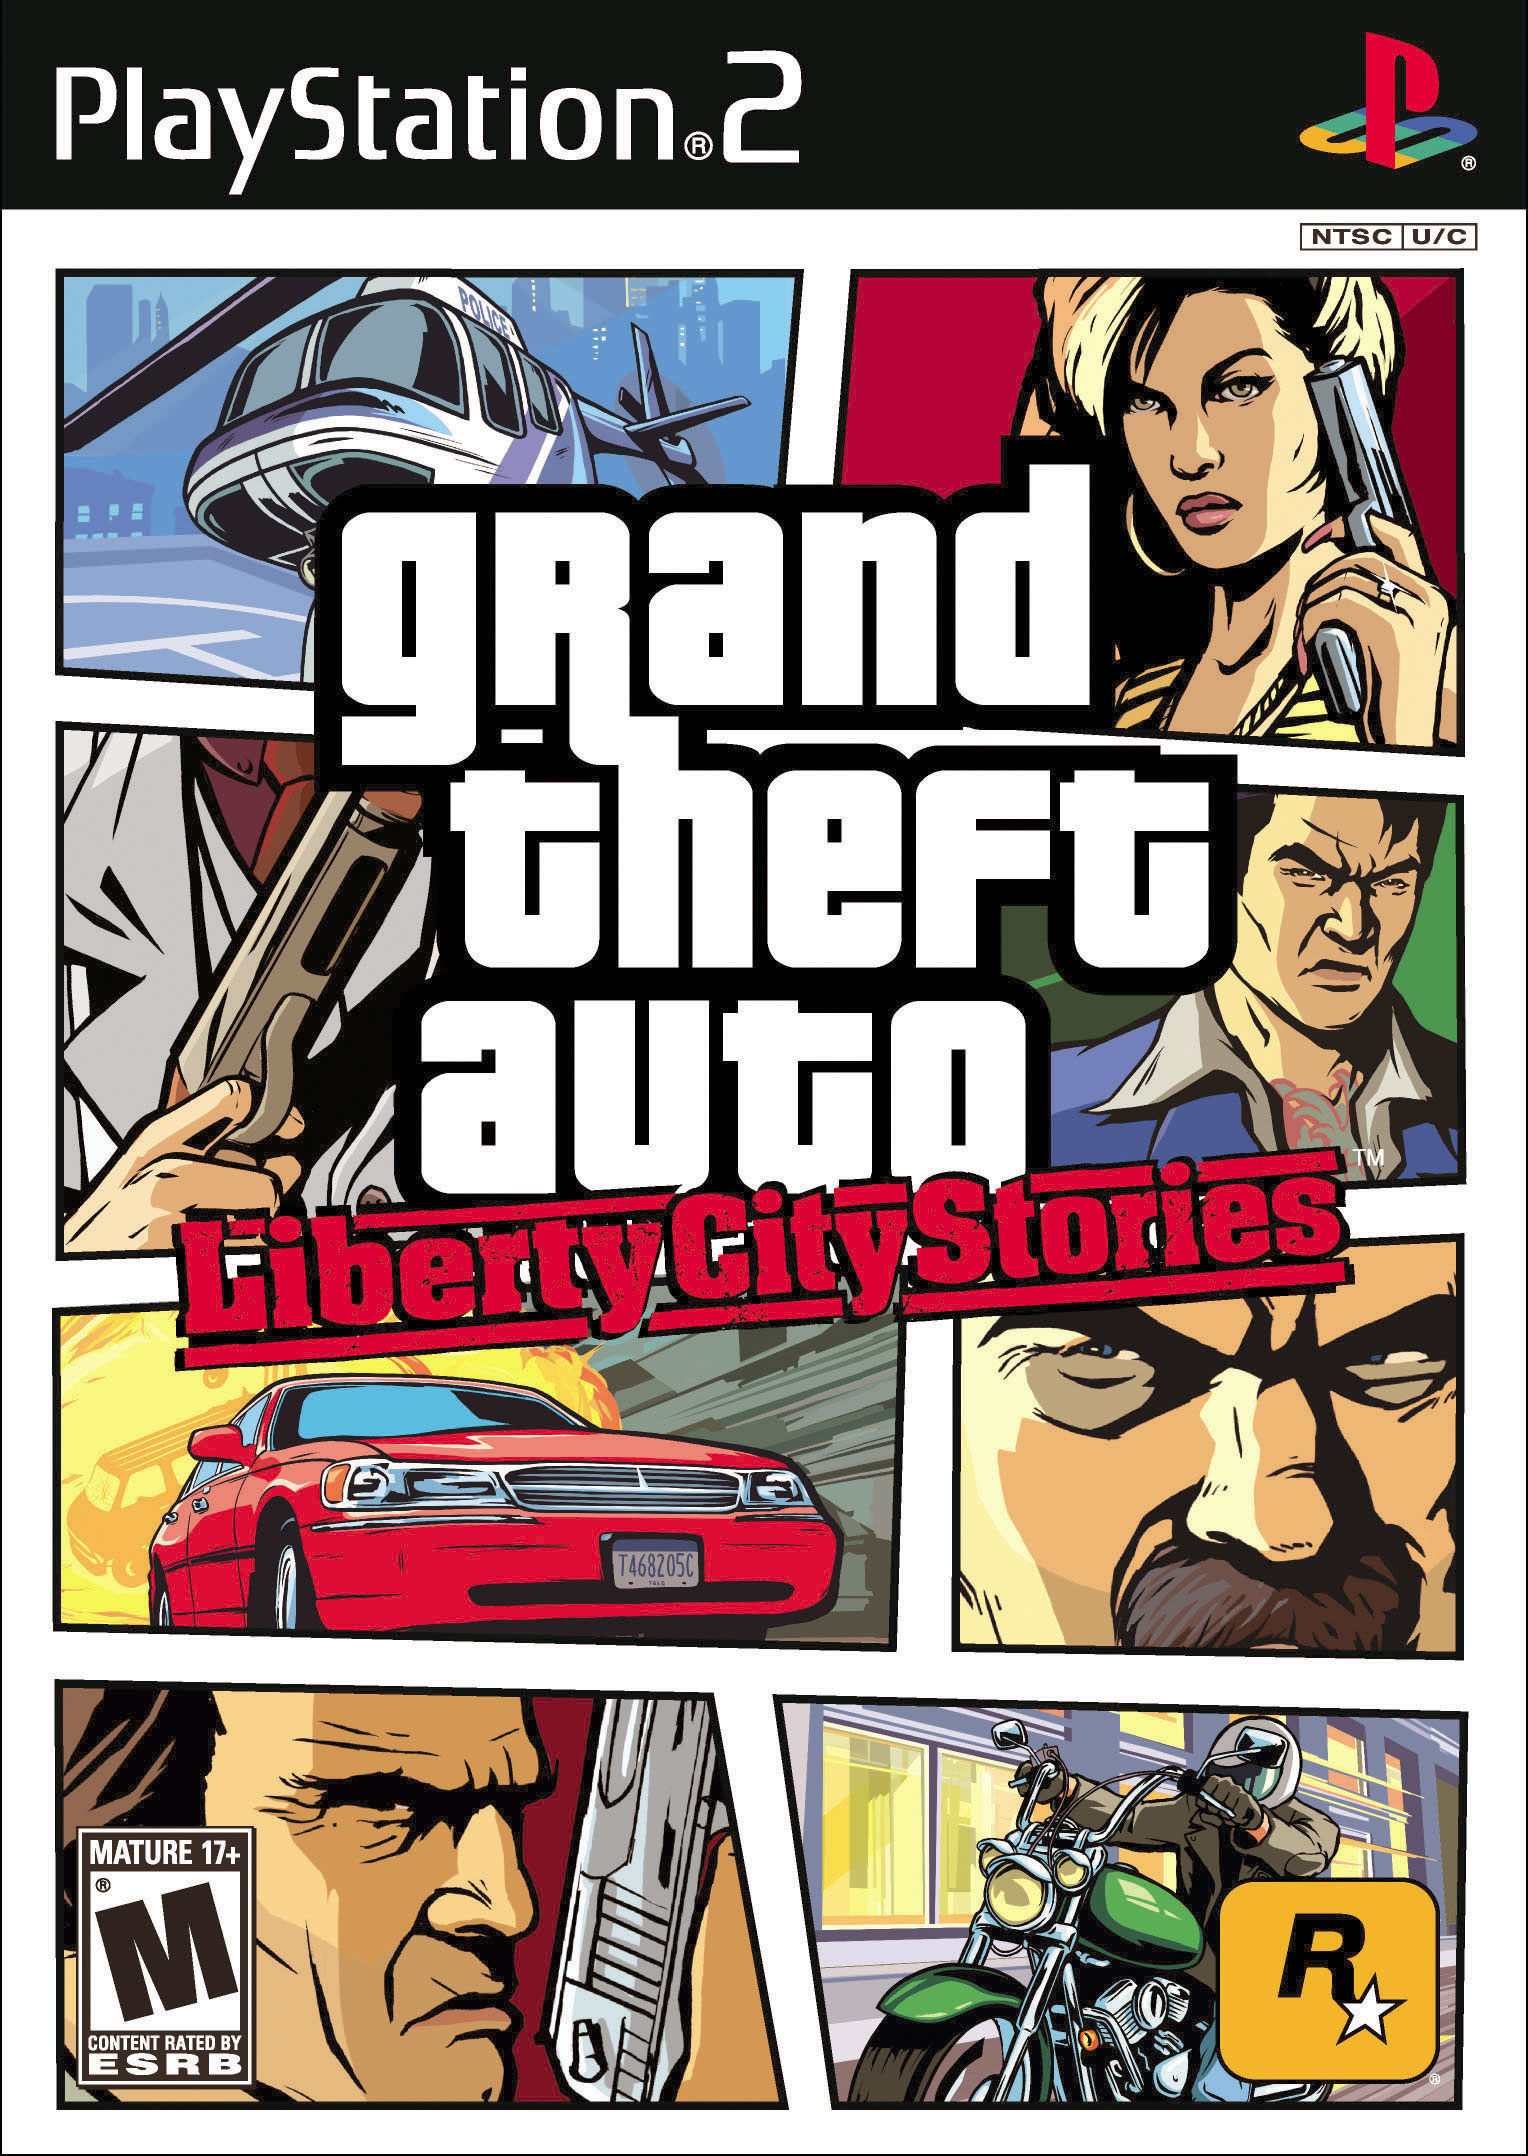 grand theft auto iv cheats helicopter with Gta Liberty City Stories on Watch also Gta V 5 Tudo O Que Precisao De Saber Ps4xbox One E Pc together with Gta Episodes From Liberty City Xbox 360 additionally Wallpaper moreover Gta 5 Cheats And Easter Eggs.